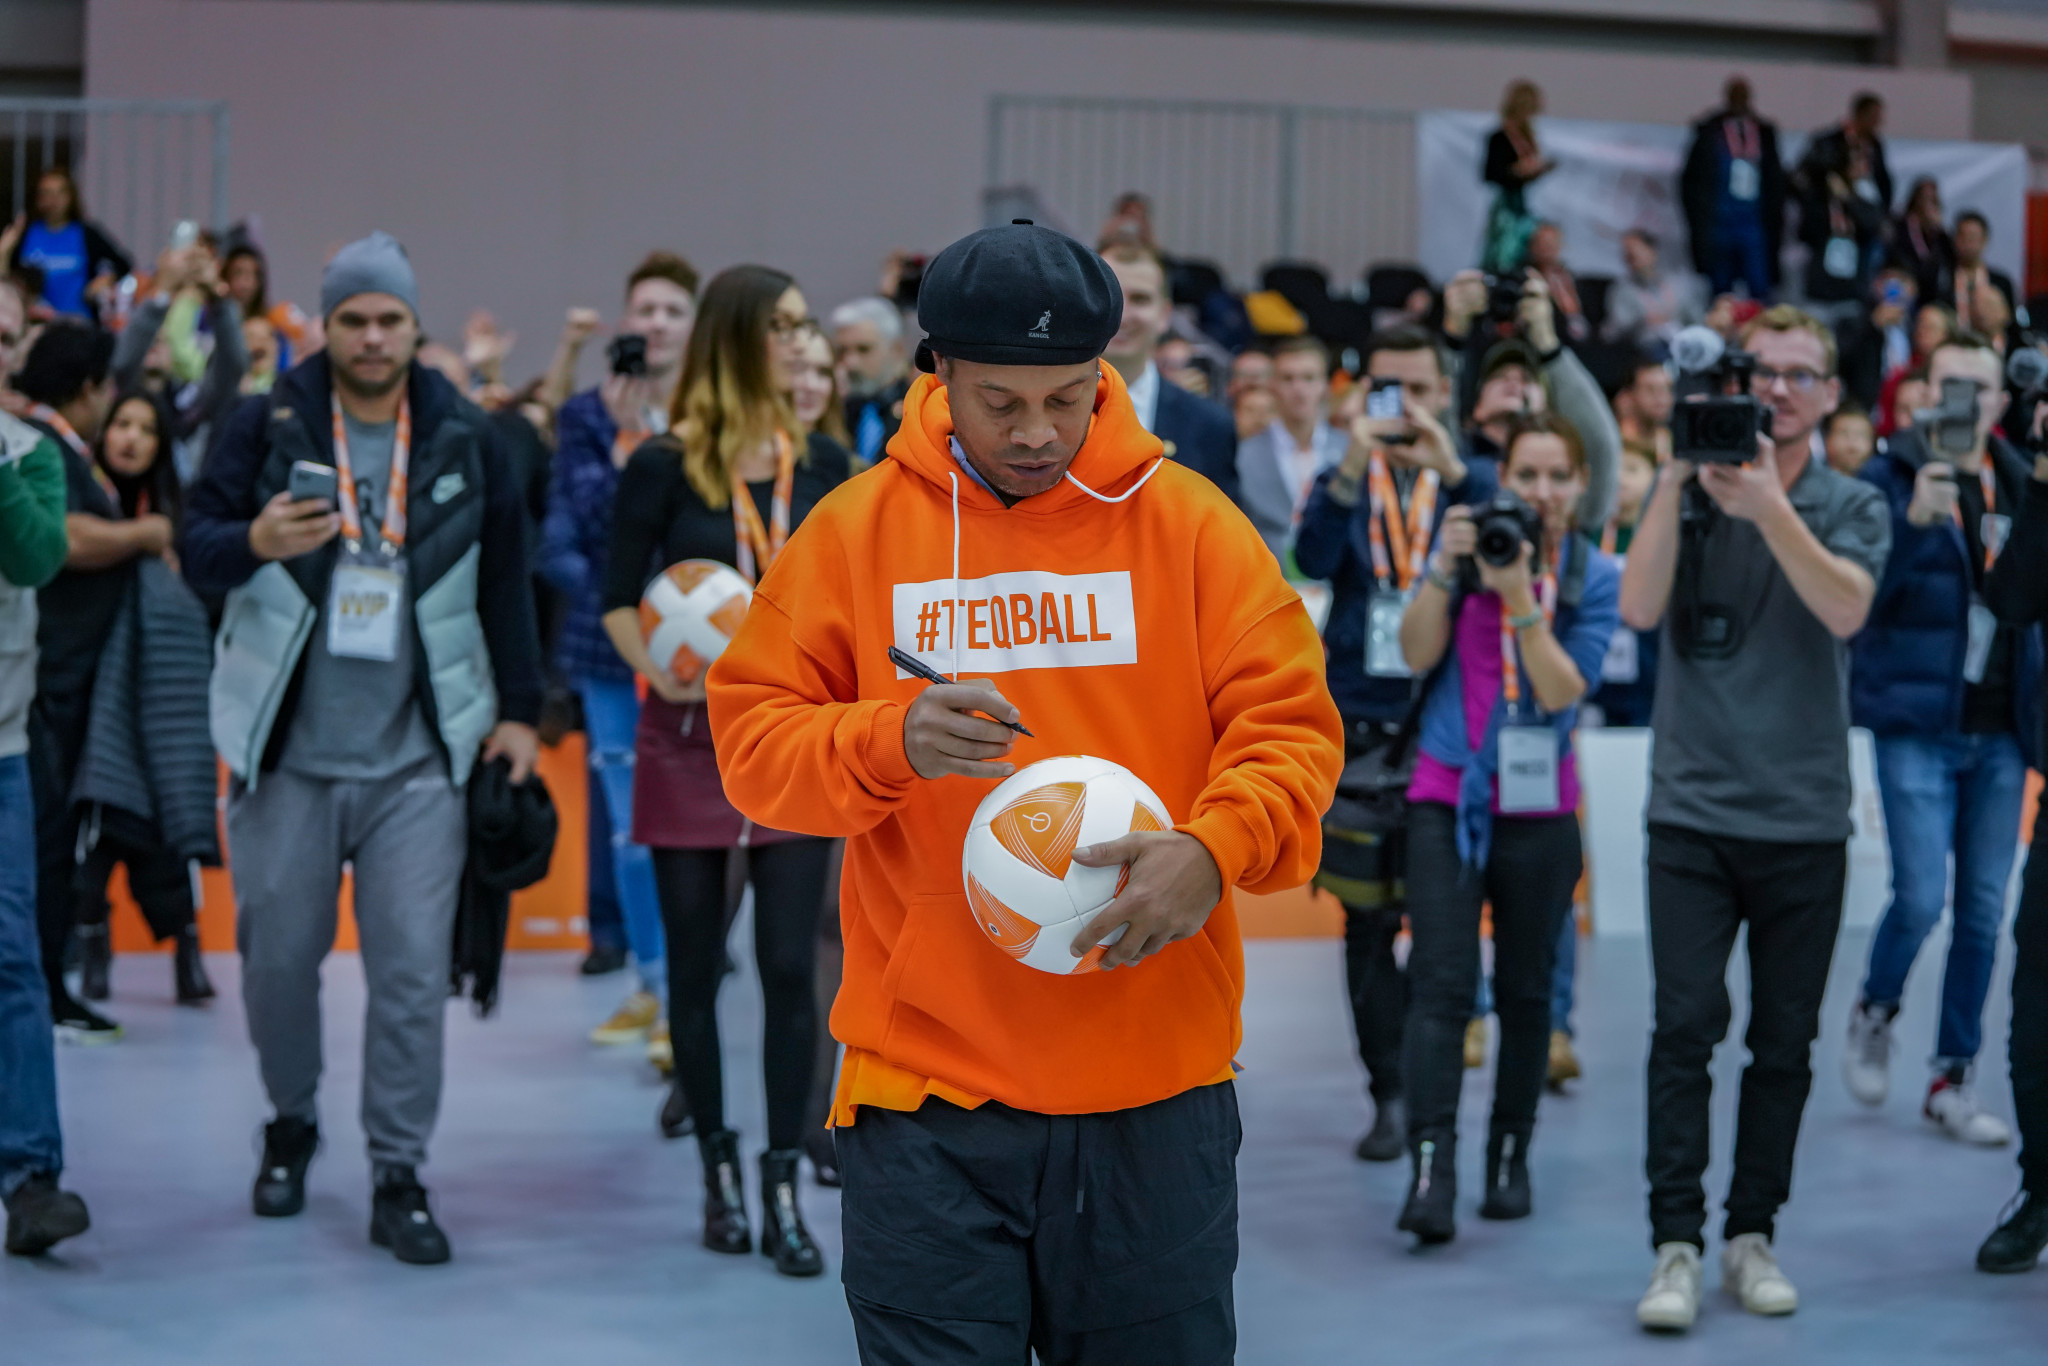 Brazilian football legend Ronaldinho drew the crowds at the Teqball World Championships ©FITEQ